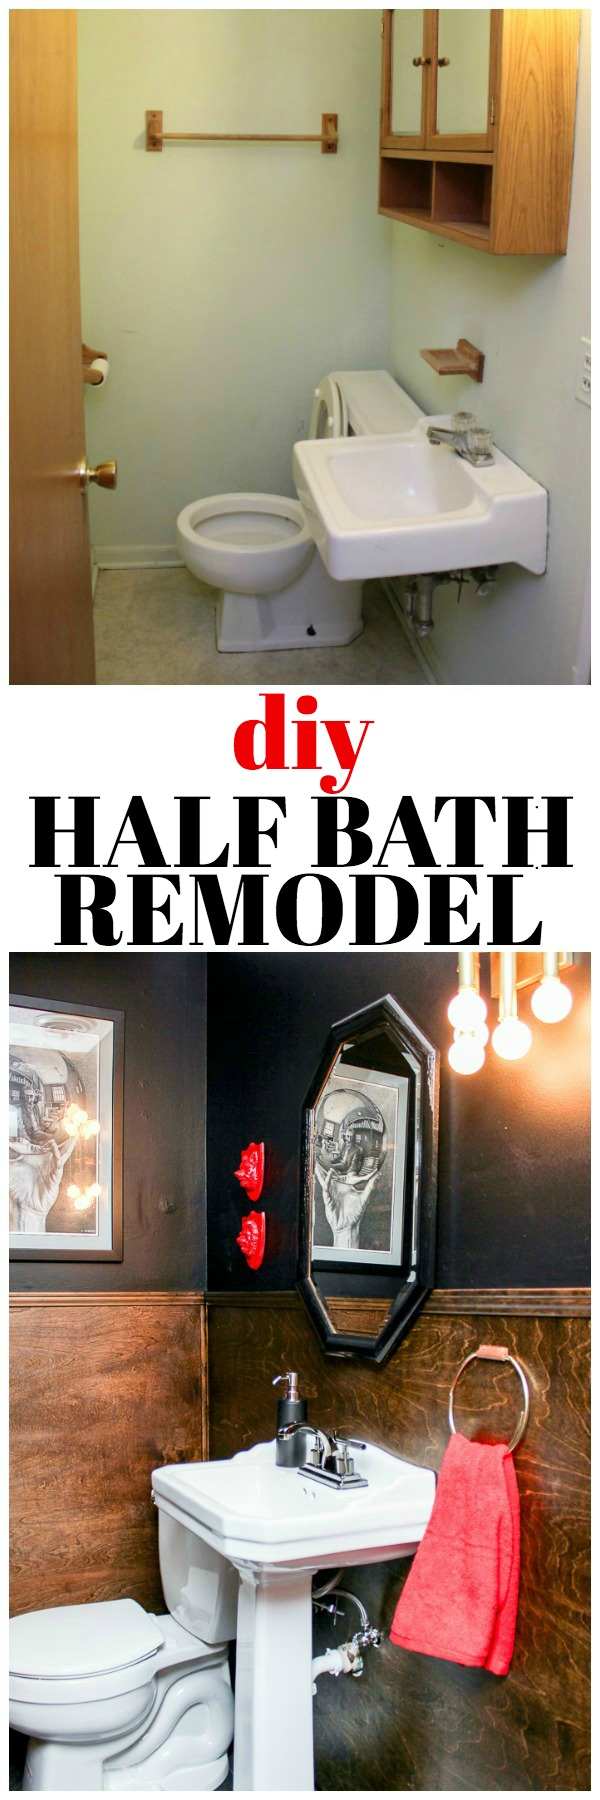 DIY Half Bath Remodel on a Budget - full of great half bathroom ideas, especially for small bathrooms.